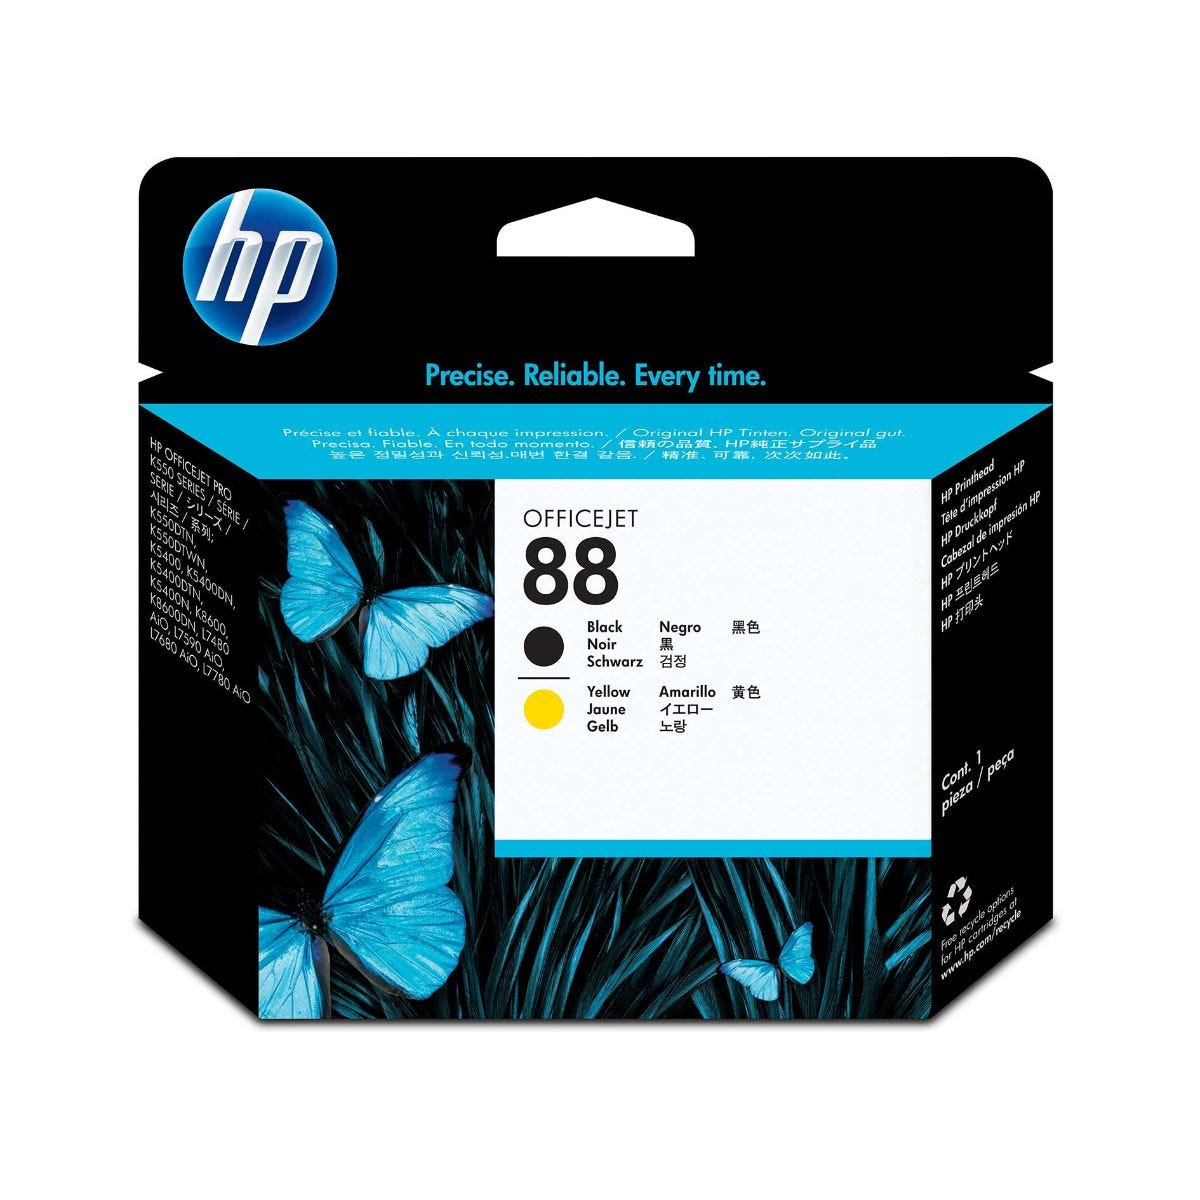 Image of HP 88 Ink Printhead Black and Yellow